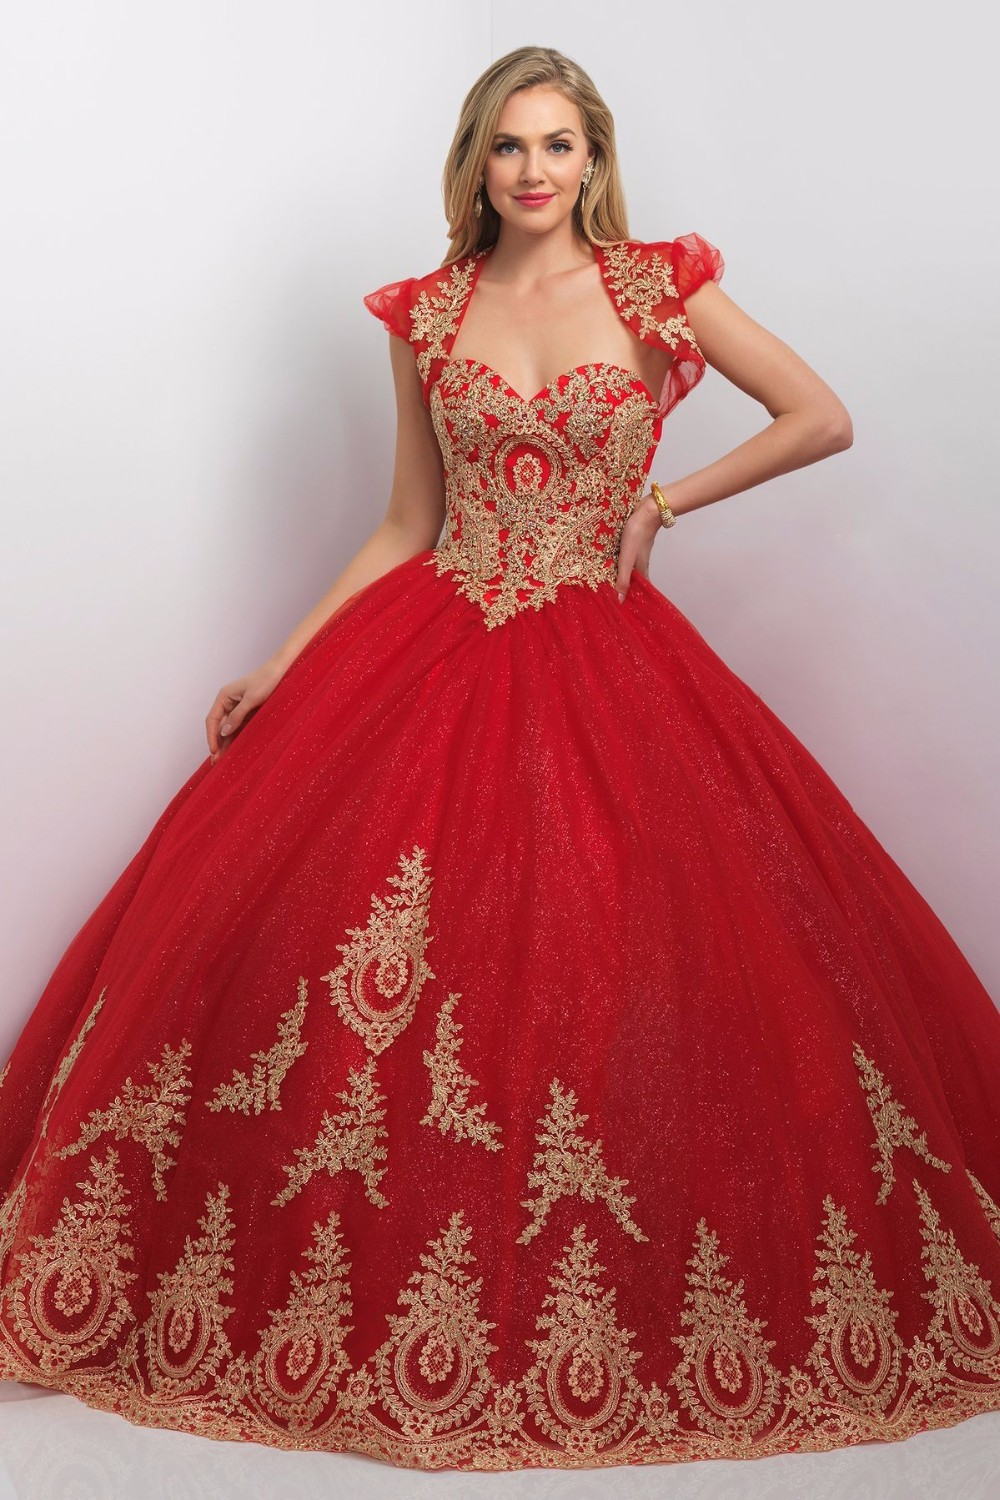 Princess Ball Gown Red Gold Quinceanera Dresses With Jacket New